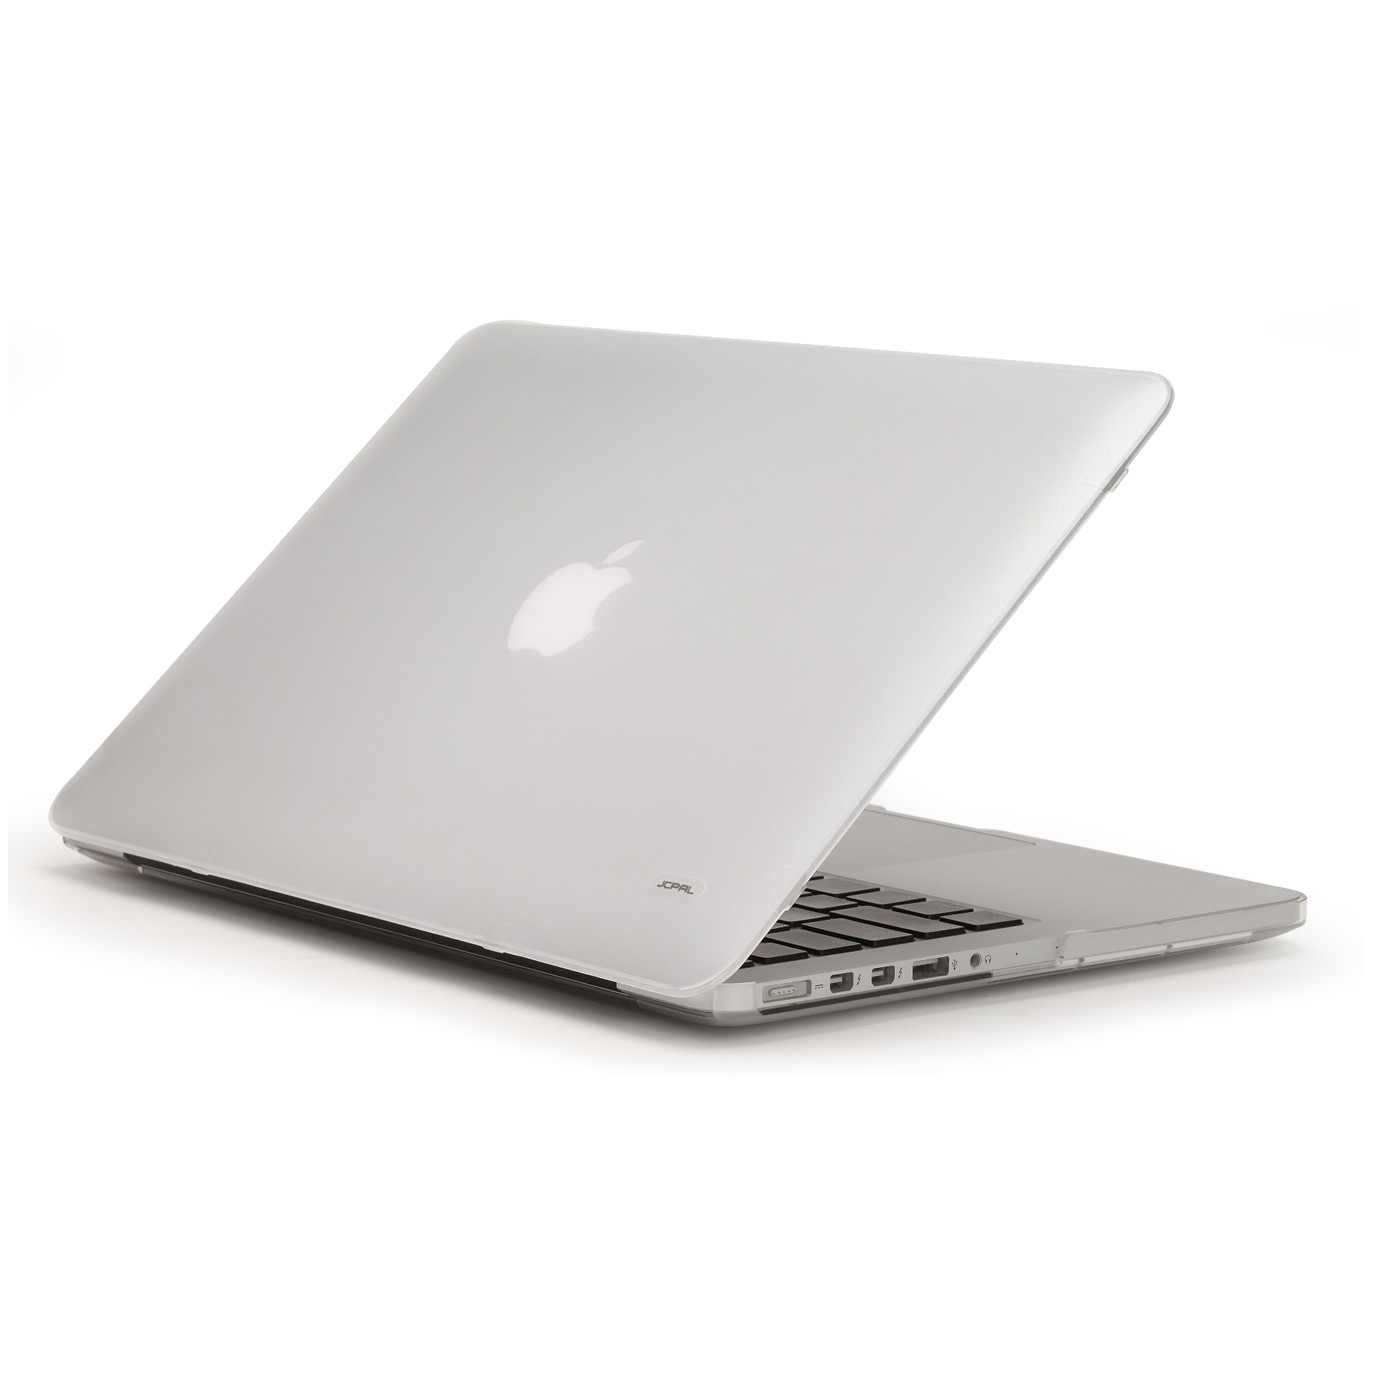 JCPAL Ultra thin Case for Macbook Air 13 inch - Transparent